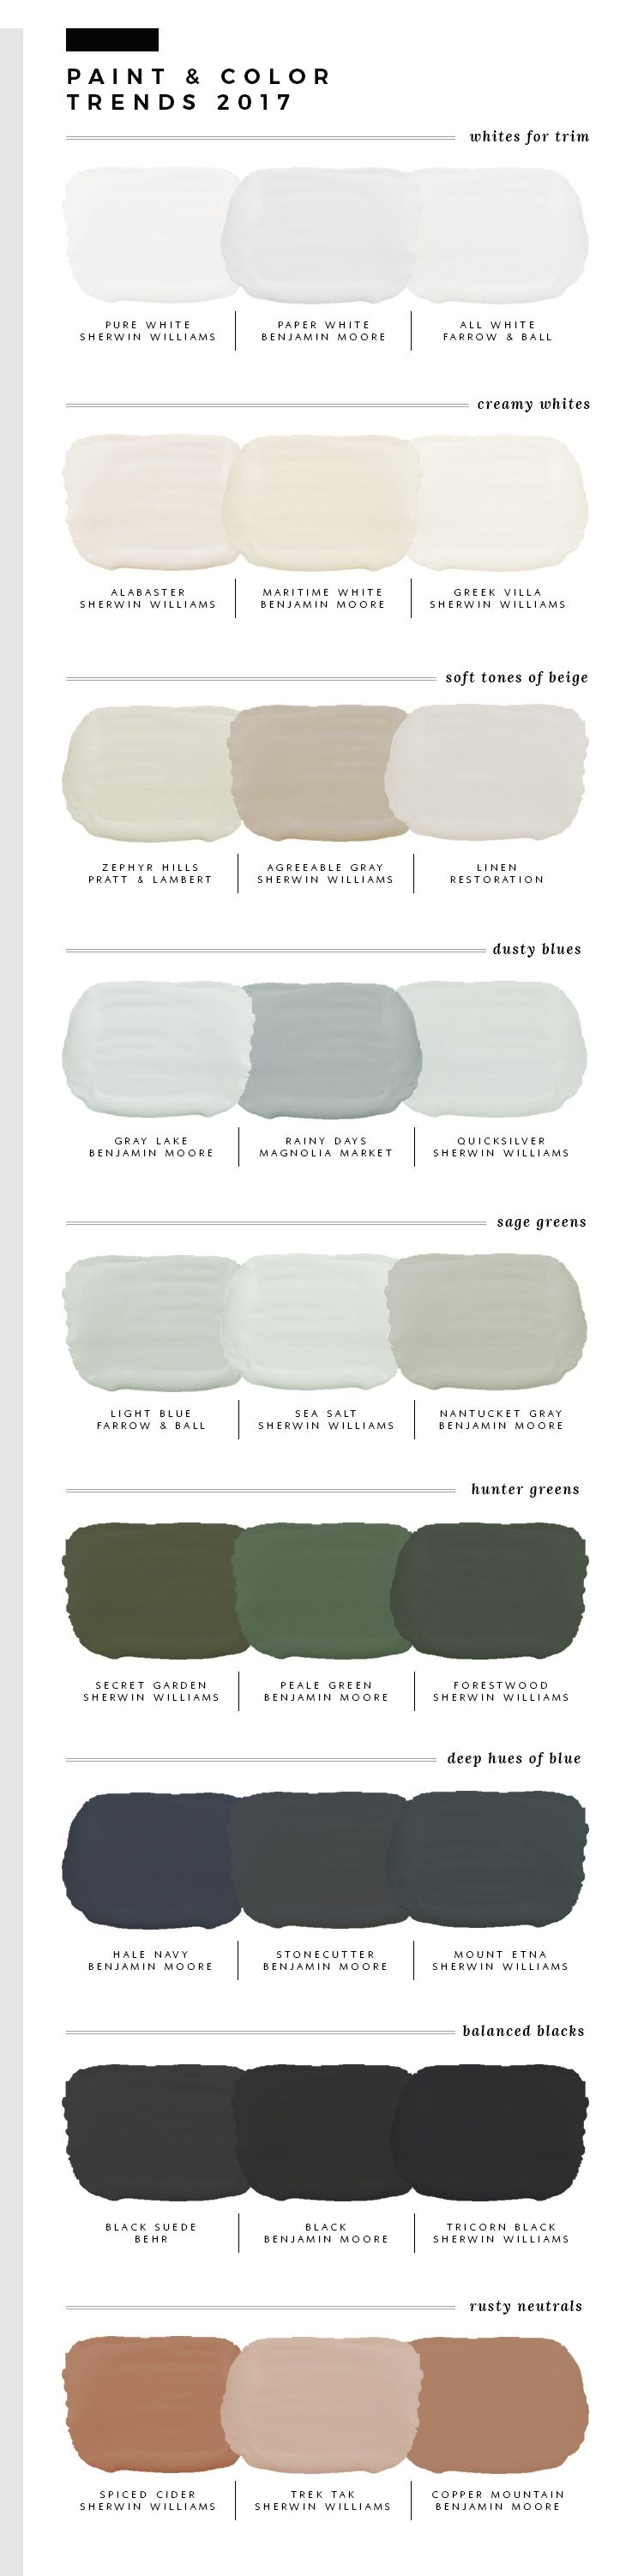 best 25 neutral wall colors ideas on pinterest neutral kitchen paint inspiration interior paint palettes and diy painting interior of house